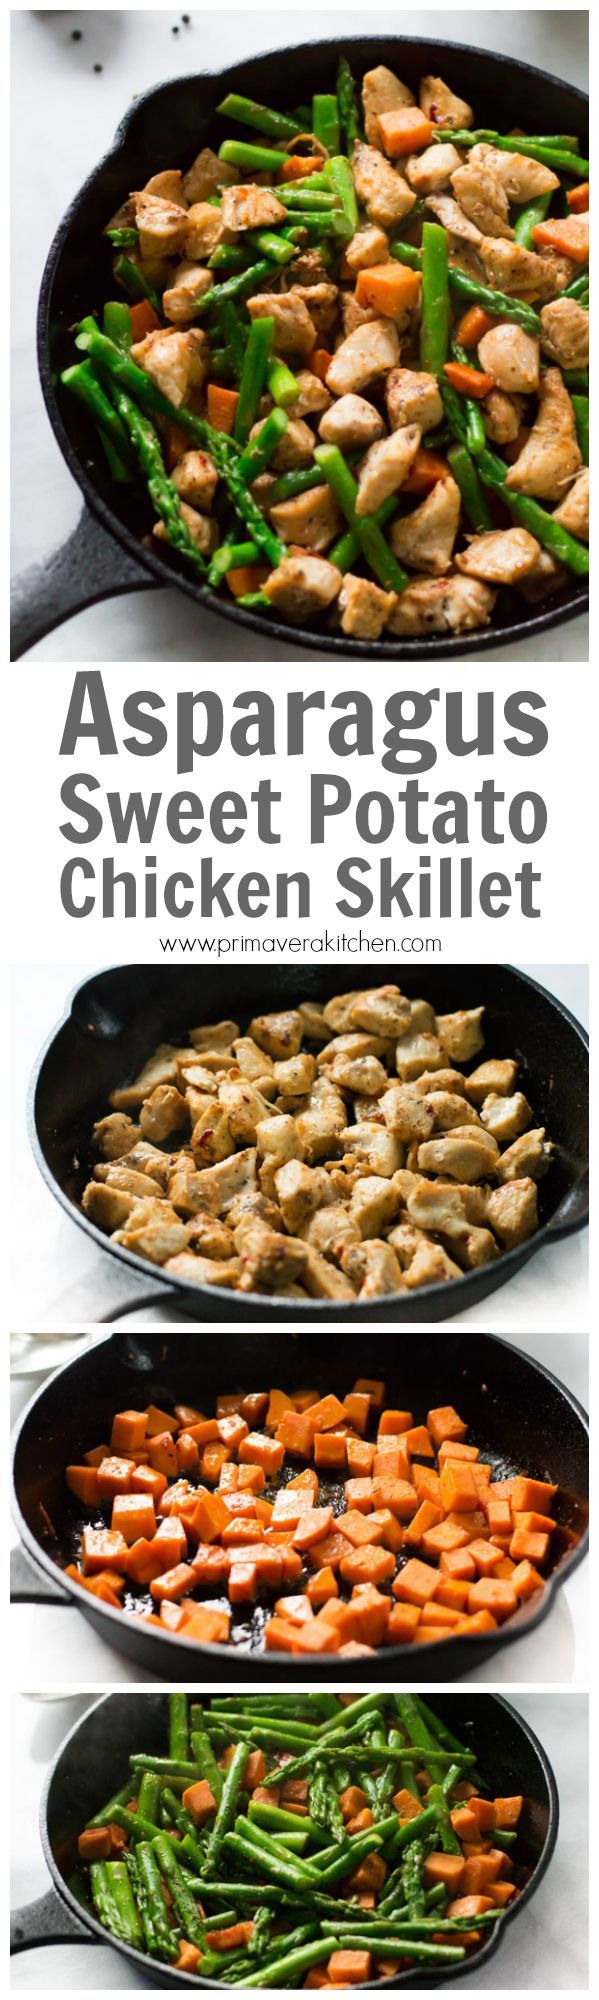 Asparagus Sweet Potato Chicken Skillet - This homemade one-pot chicken skillet recipe is made with asparagus and sweet potato. This is a gluten-free paleo and easy to make meal for your busy weeknight dinner.